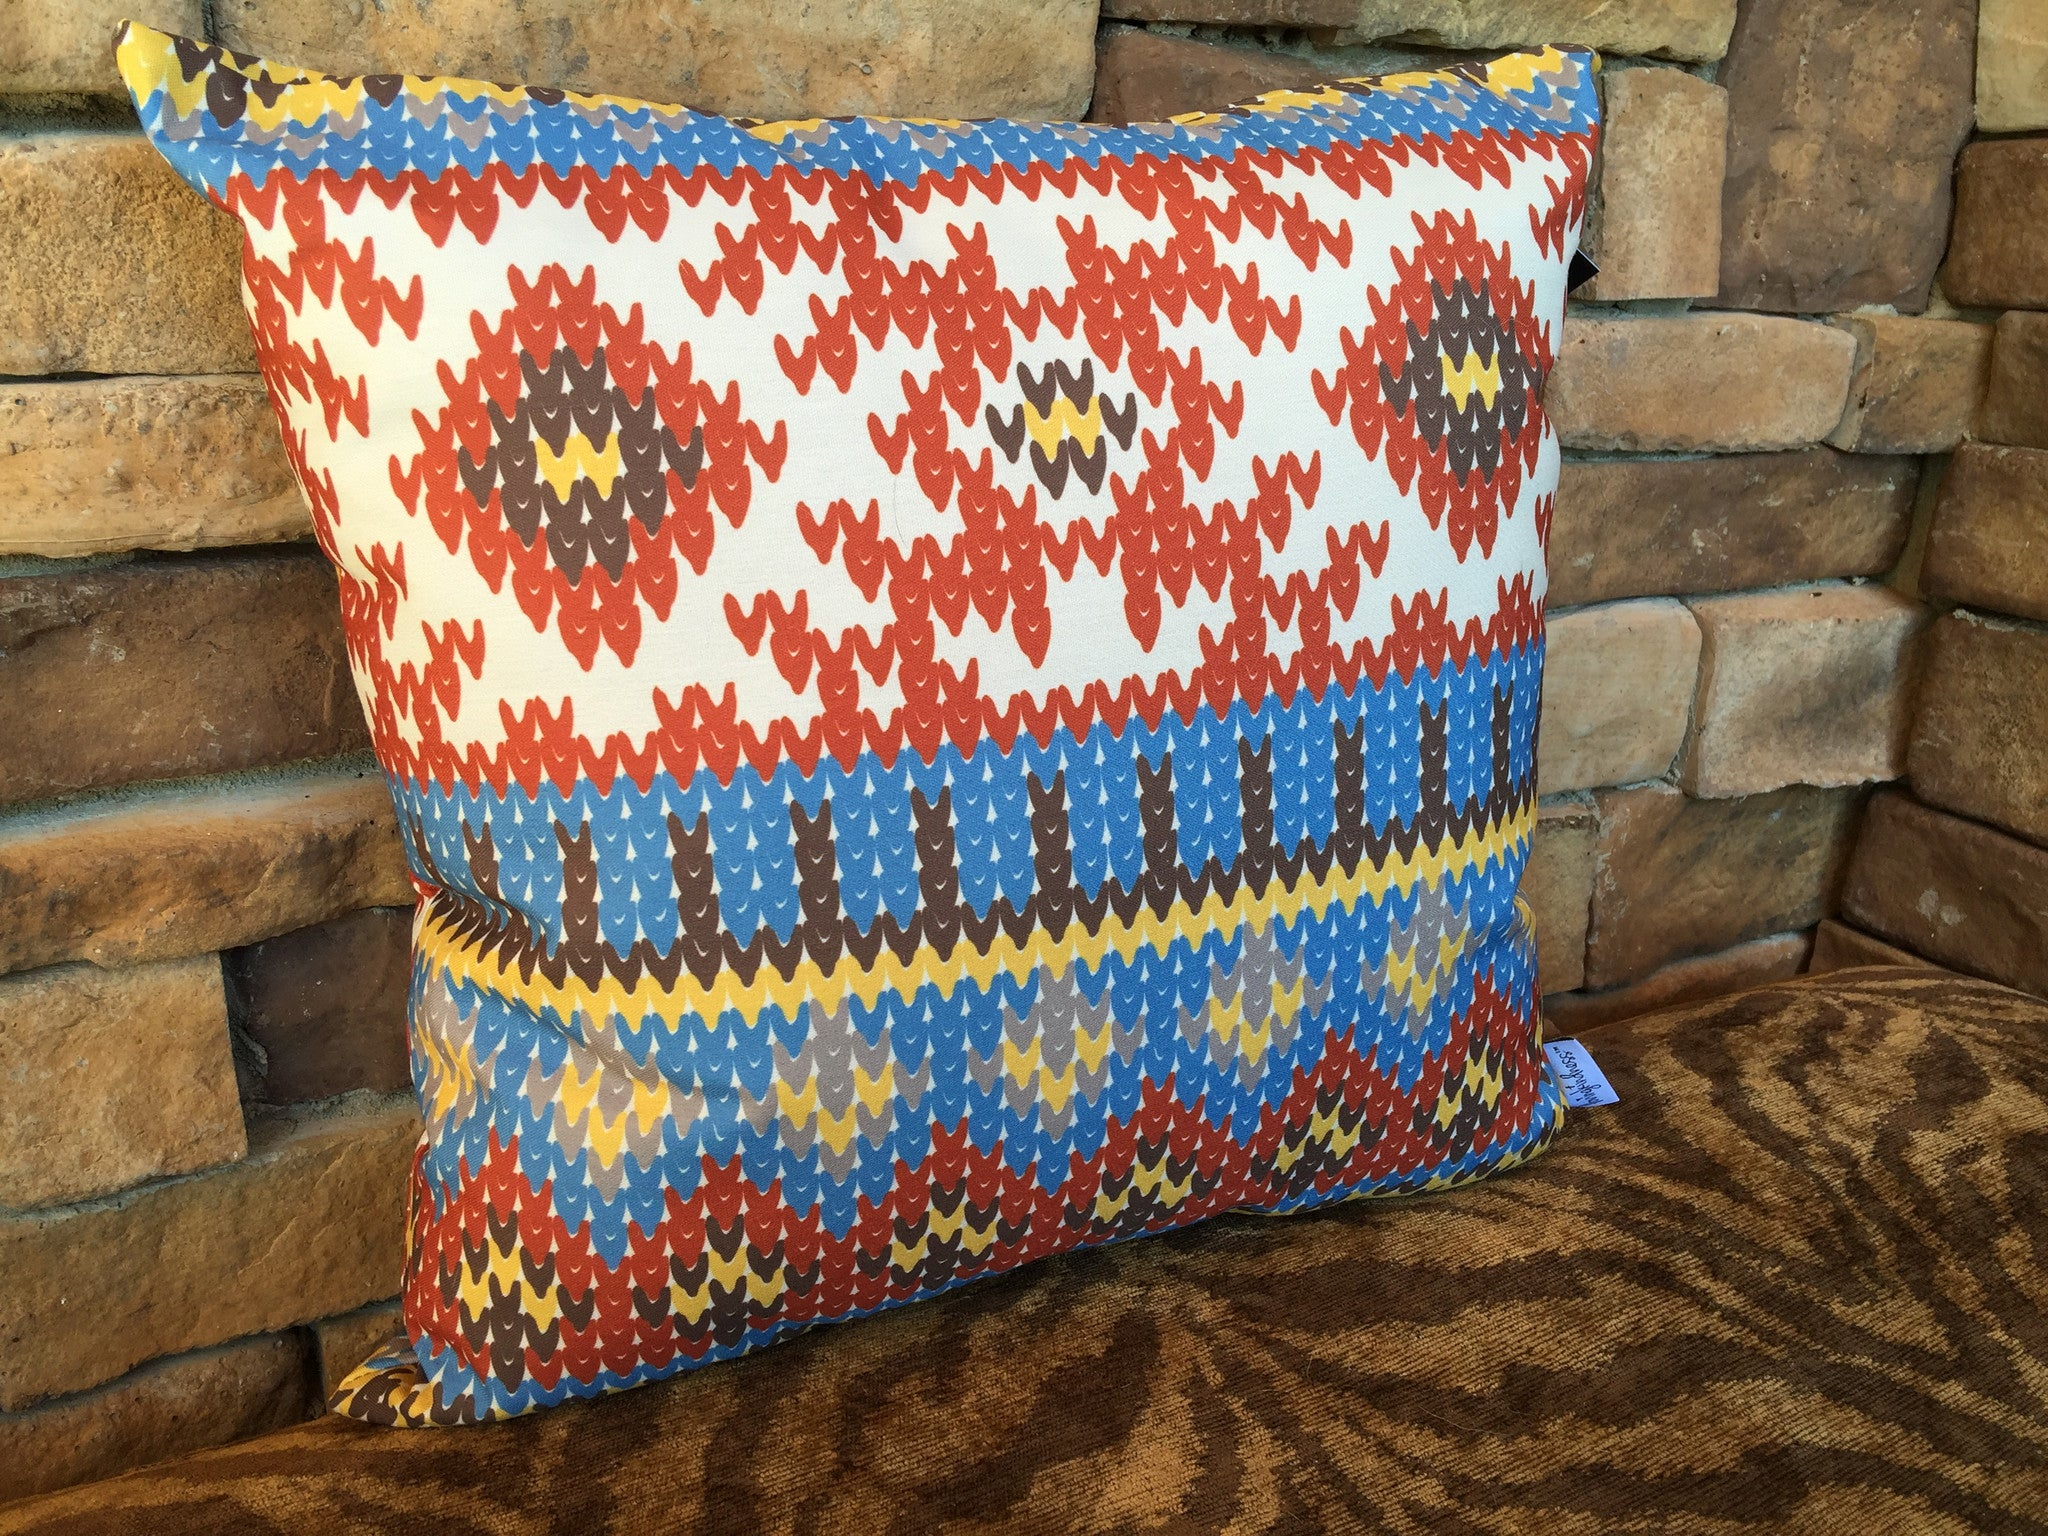 decorative pin pillow pillows decor boho vintage fabric kilim style moroccan cover cushion